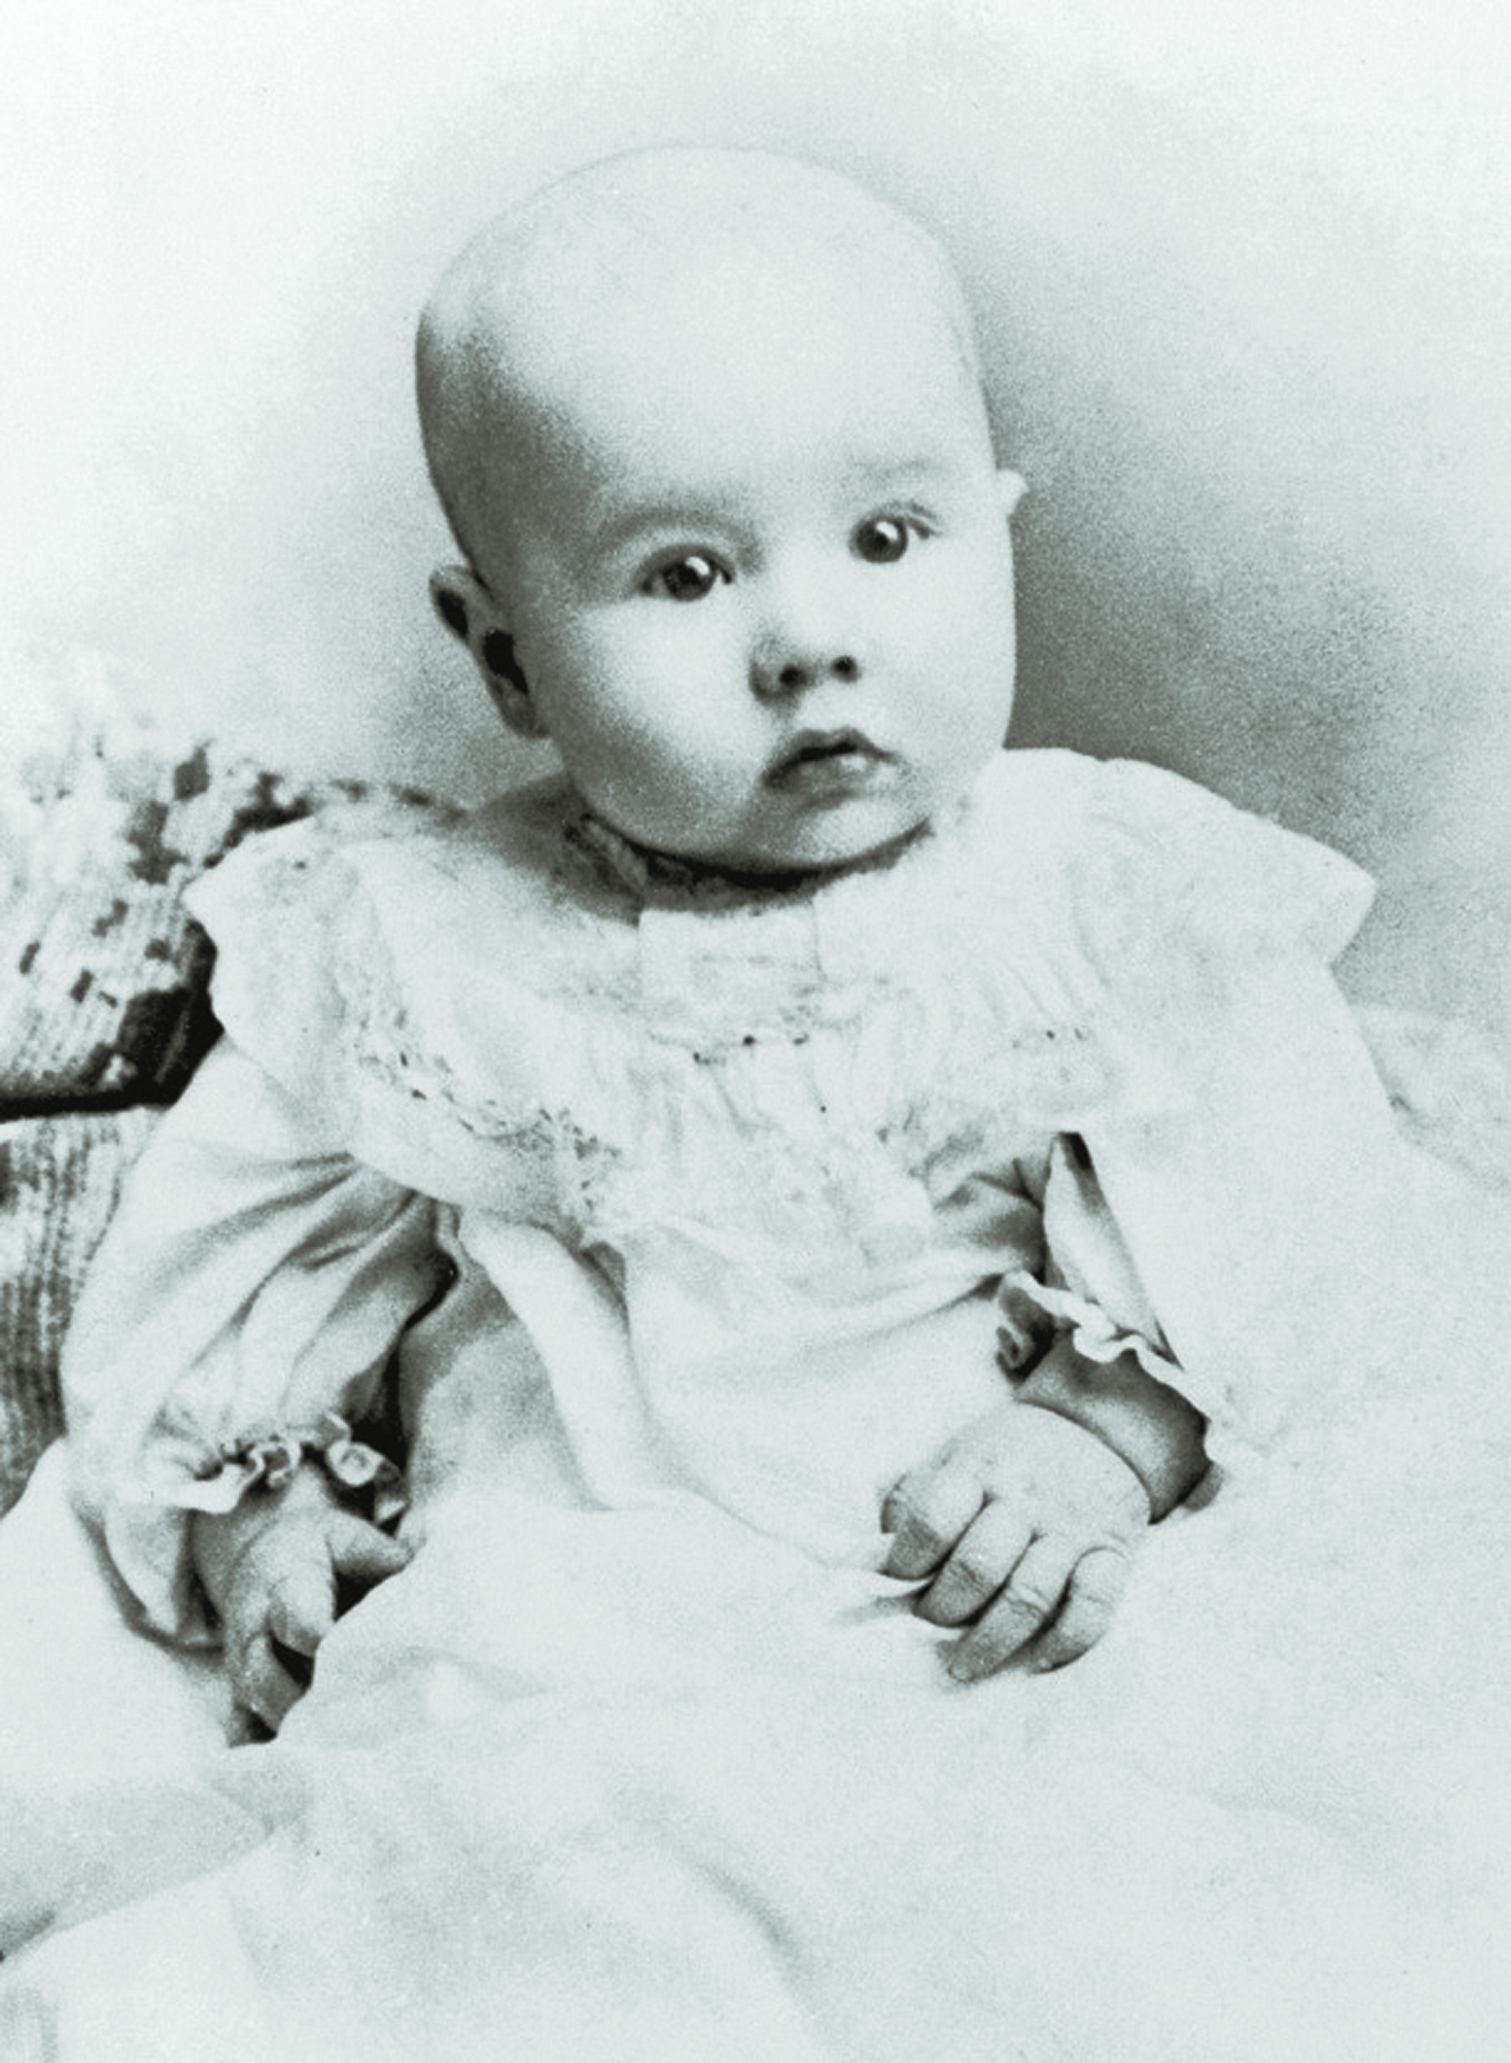 Ezra Taft Benson was over 11 pounds when he was on born Aug. 4, 1899 in a two-room farmhouse near Whitney, Idaho. He was named after his great-grandfather, Ezra T. Benson, was a member of the Quorum of the Twelve Apostle.